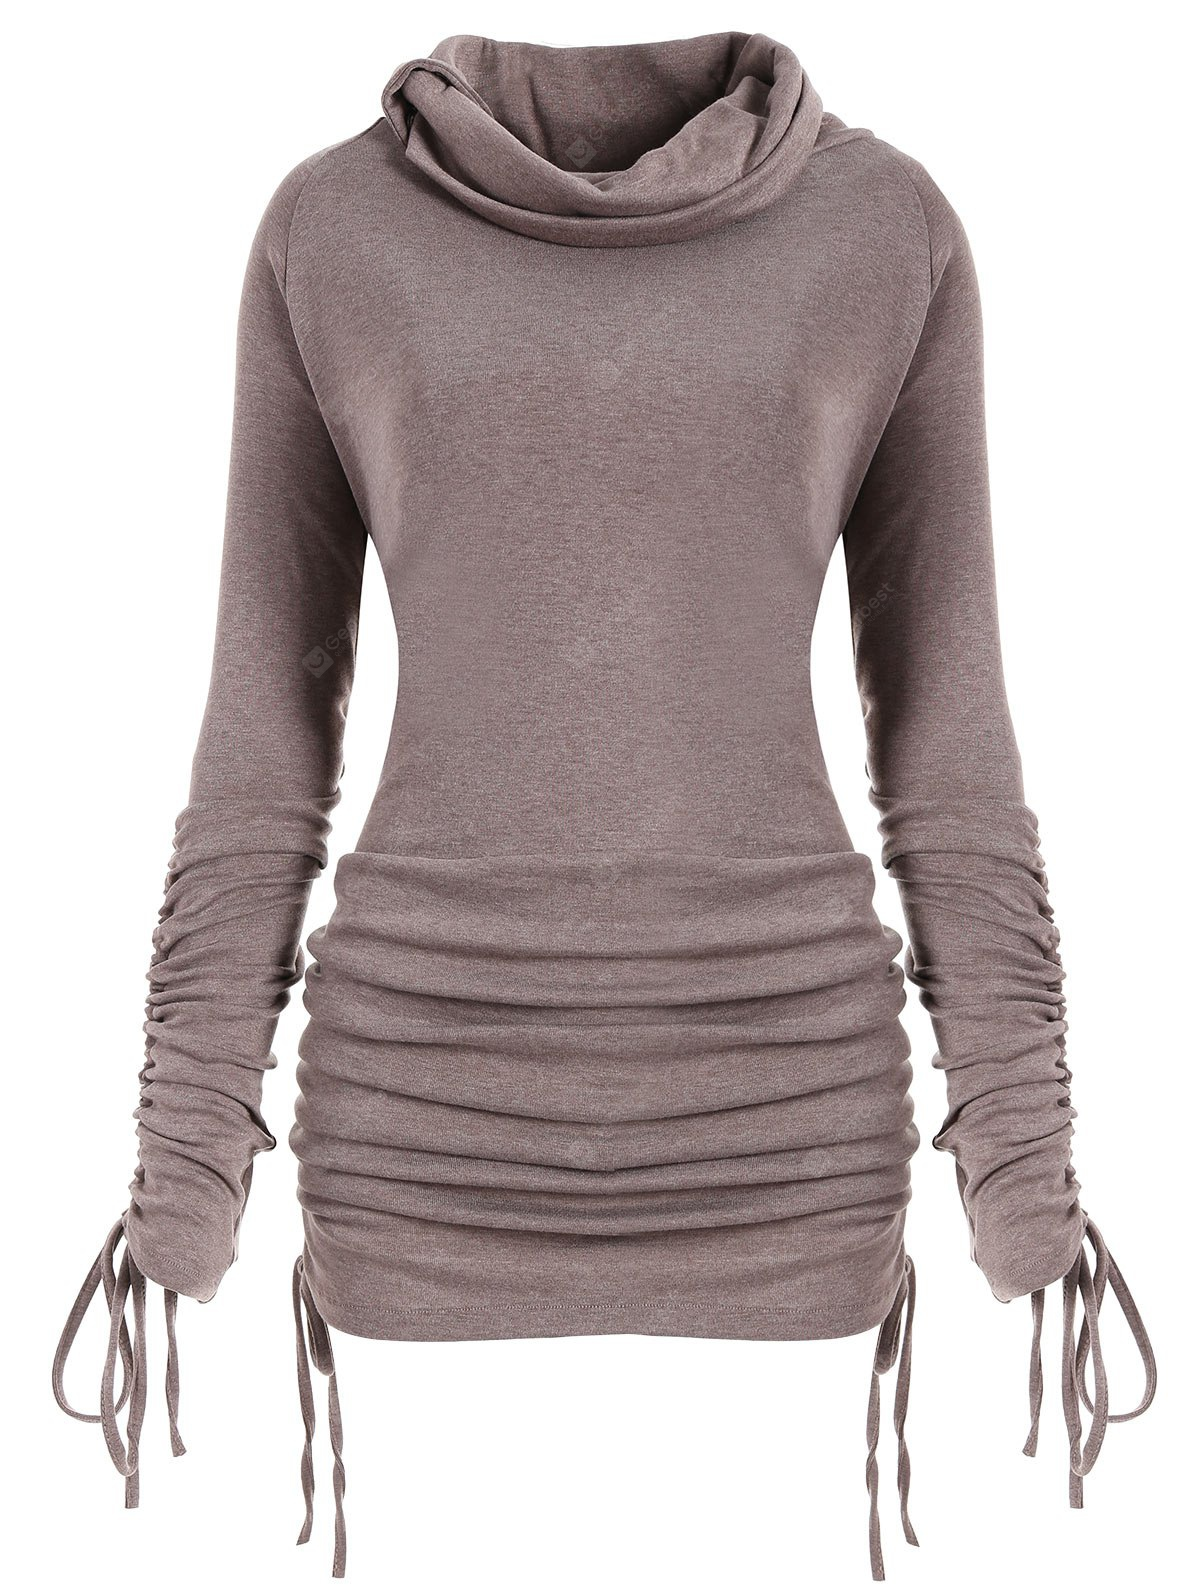 Plus Size Convertible Long Sweatshirt